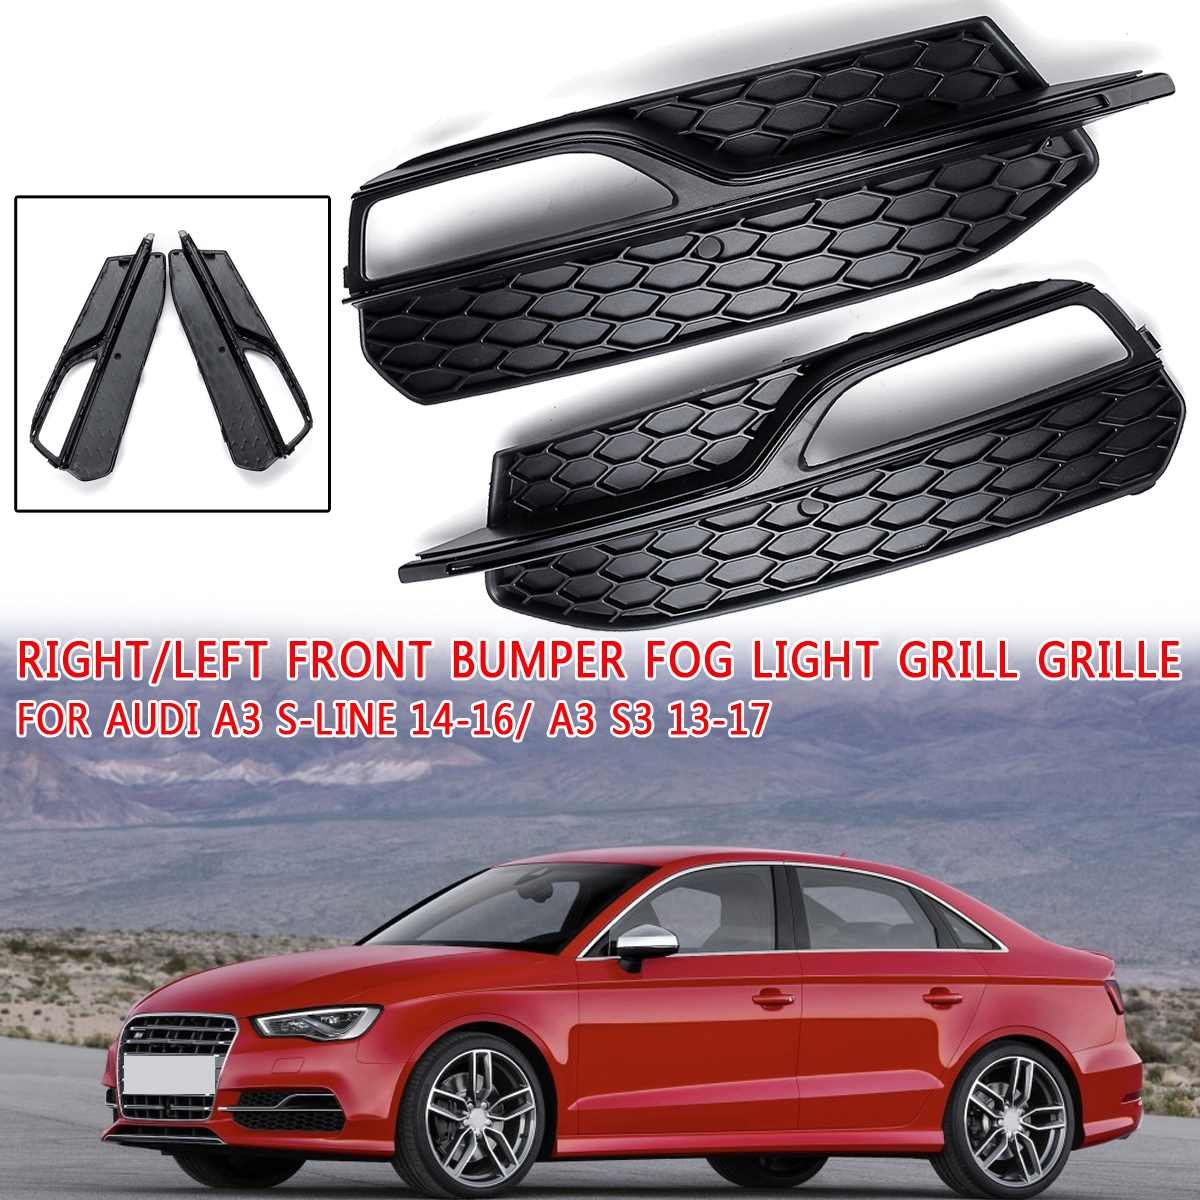 Black Right/Left Front Bumper Fog Light Mesh Grill Grille For Audi A3 S-Line 2014 2015 2016 A3 S3 2013 2014 2015 2016 2017 New